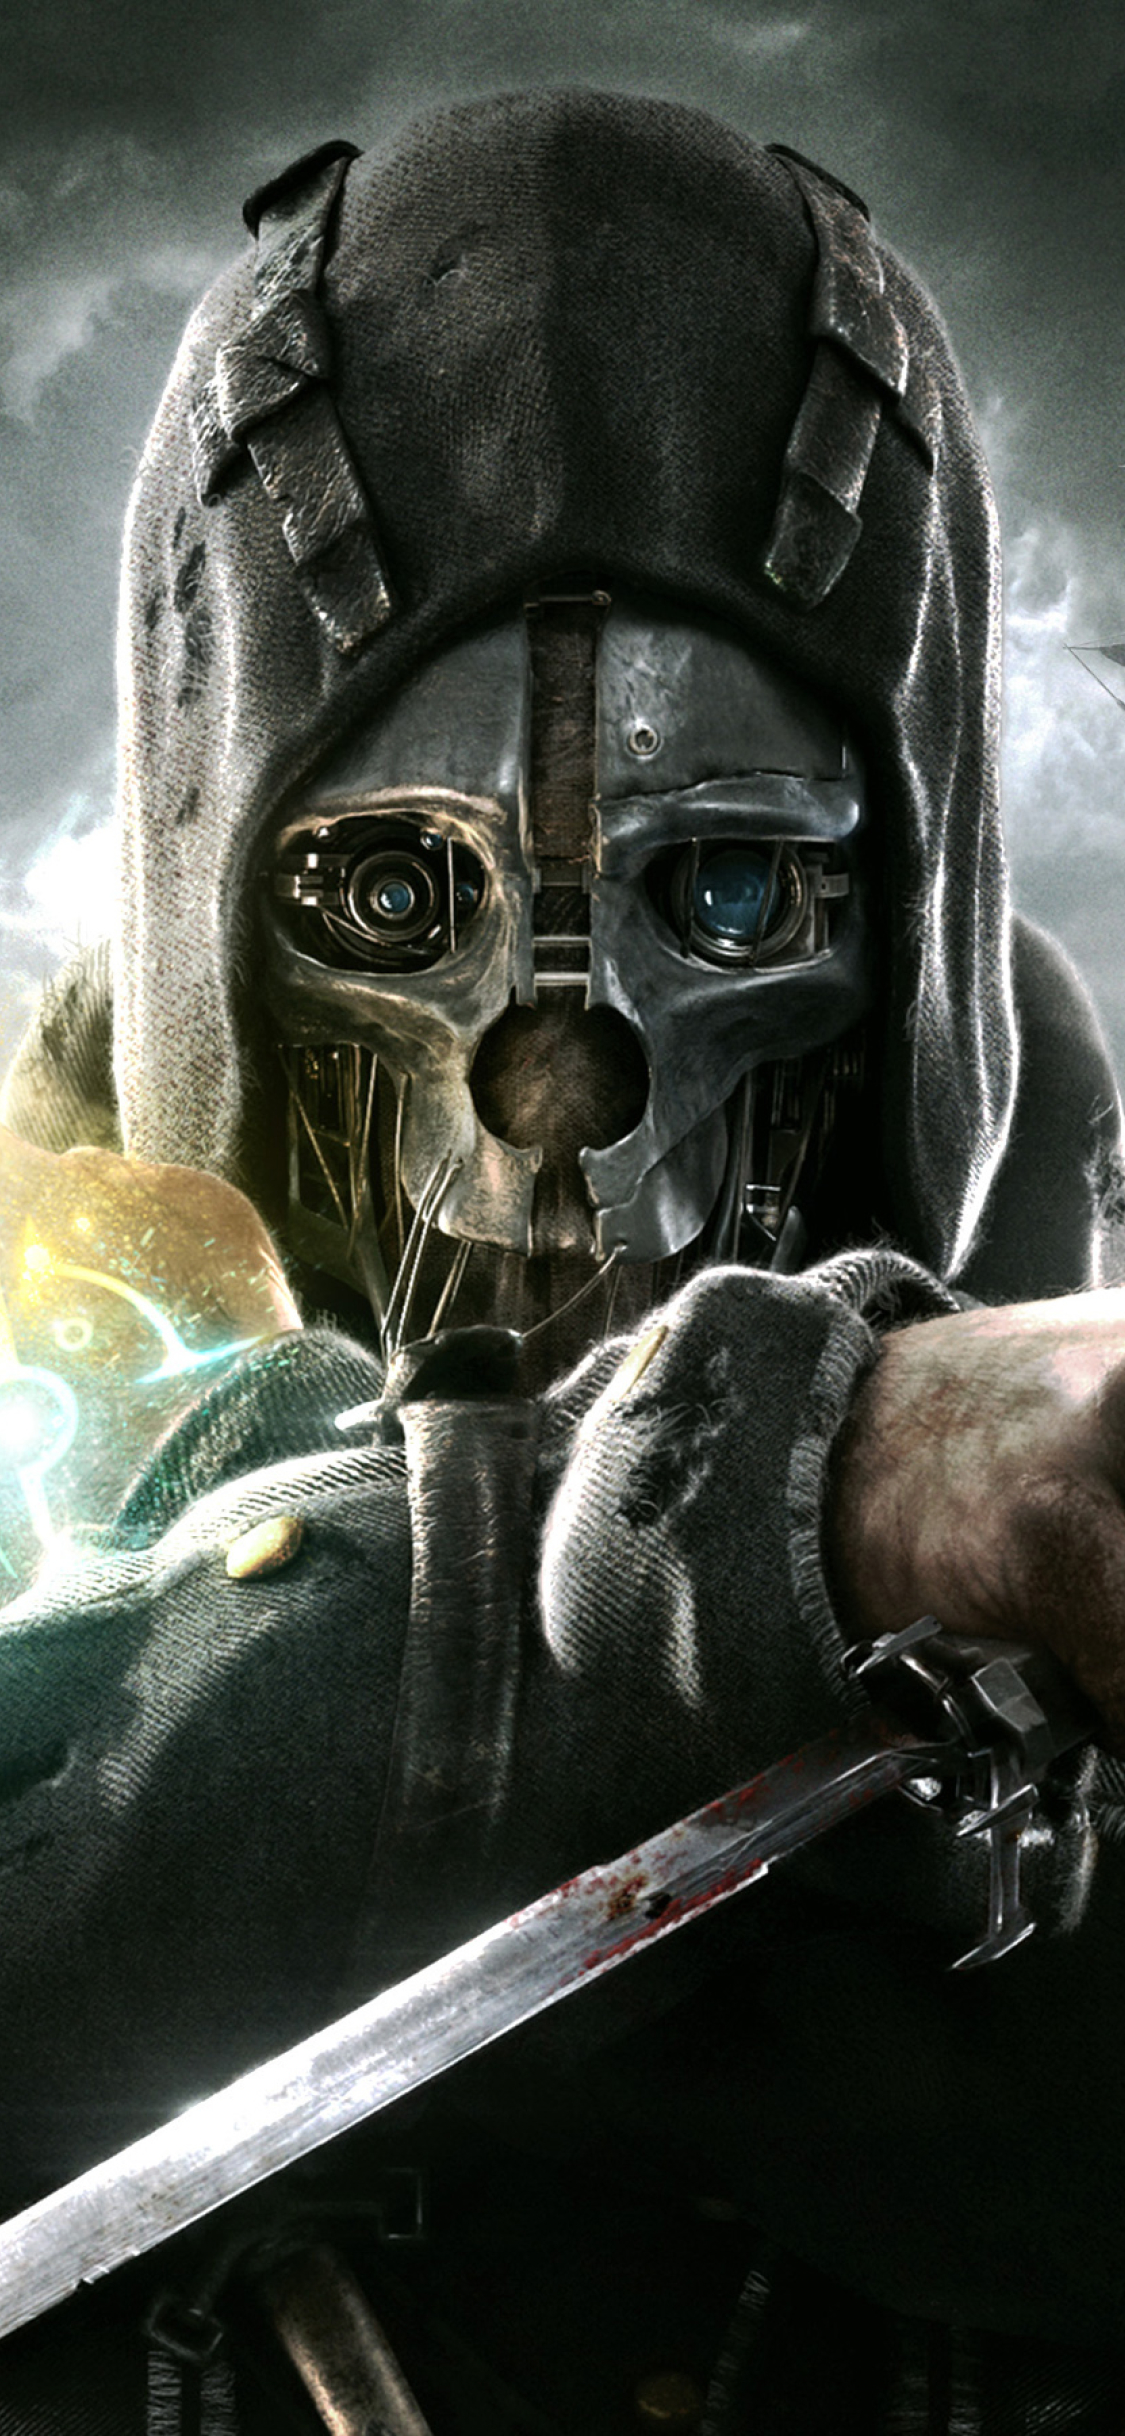 1125x2436 Dishonored Fighter Iphone XS,Iphone 10,Iphone X ...